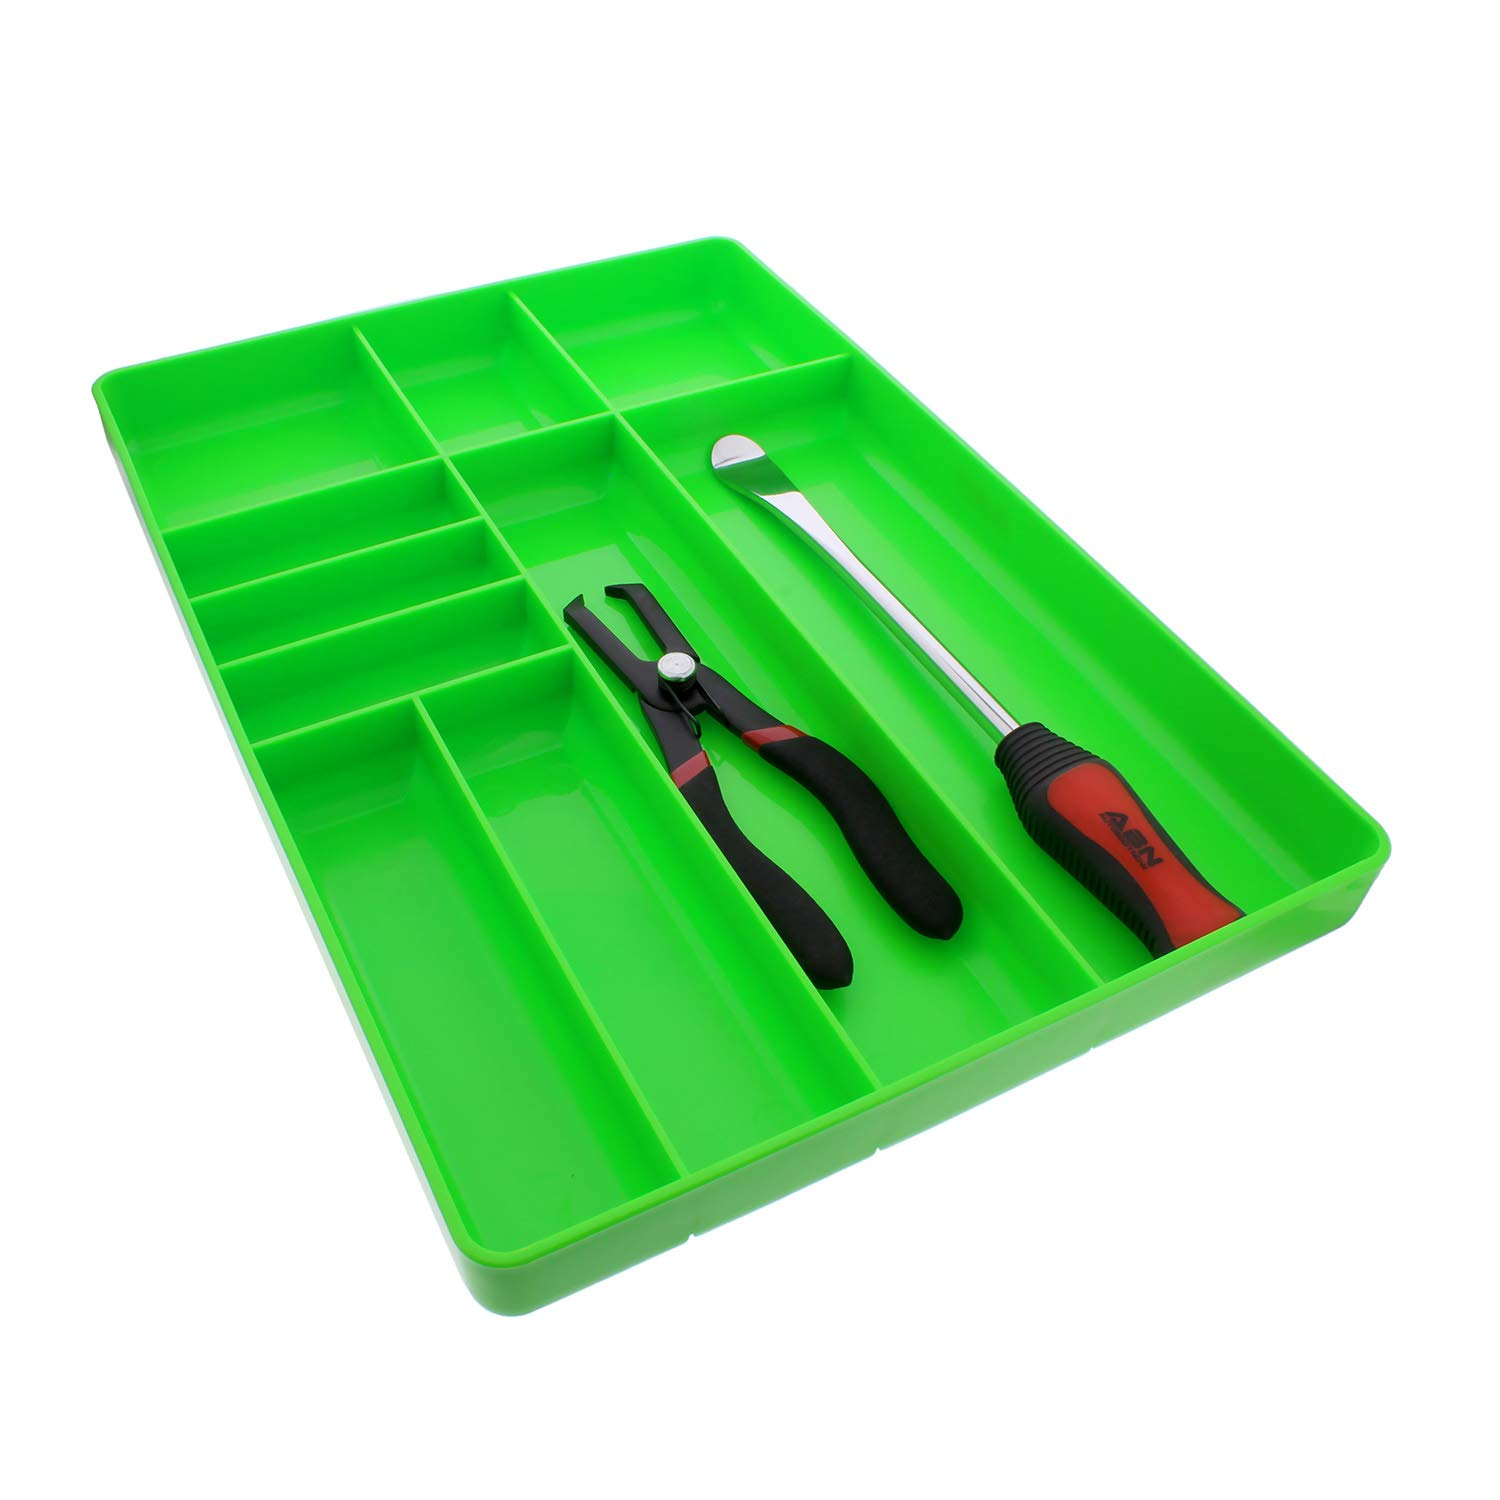 ABN | Toolbox Drawer Organizer Tool Organizer Tool Tray - Tool Drawer Organizer Sorting Tray, 16x11x1.5'' Inch in Green by ABN (Image #4)